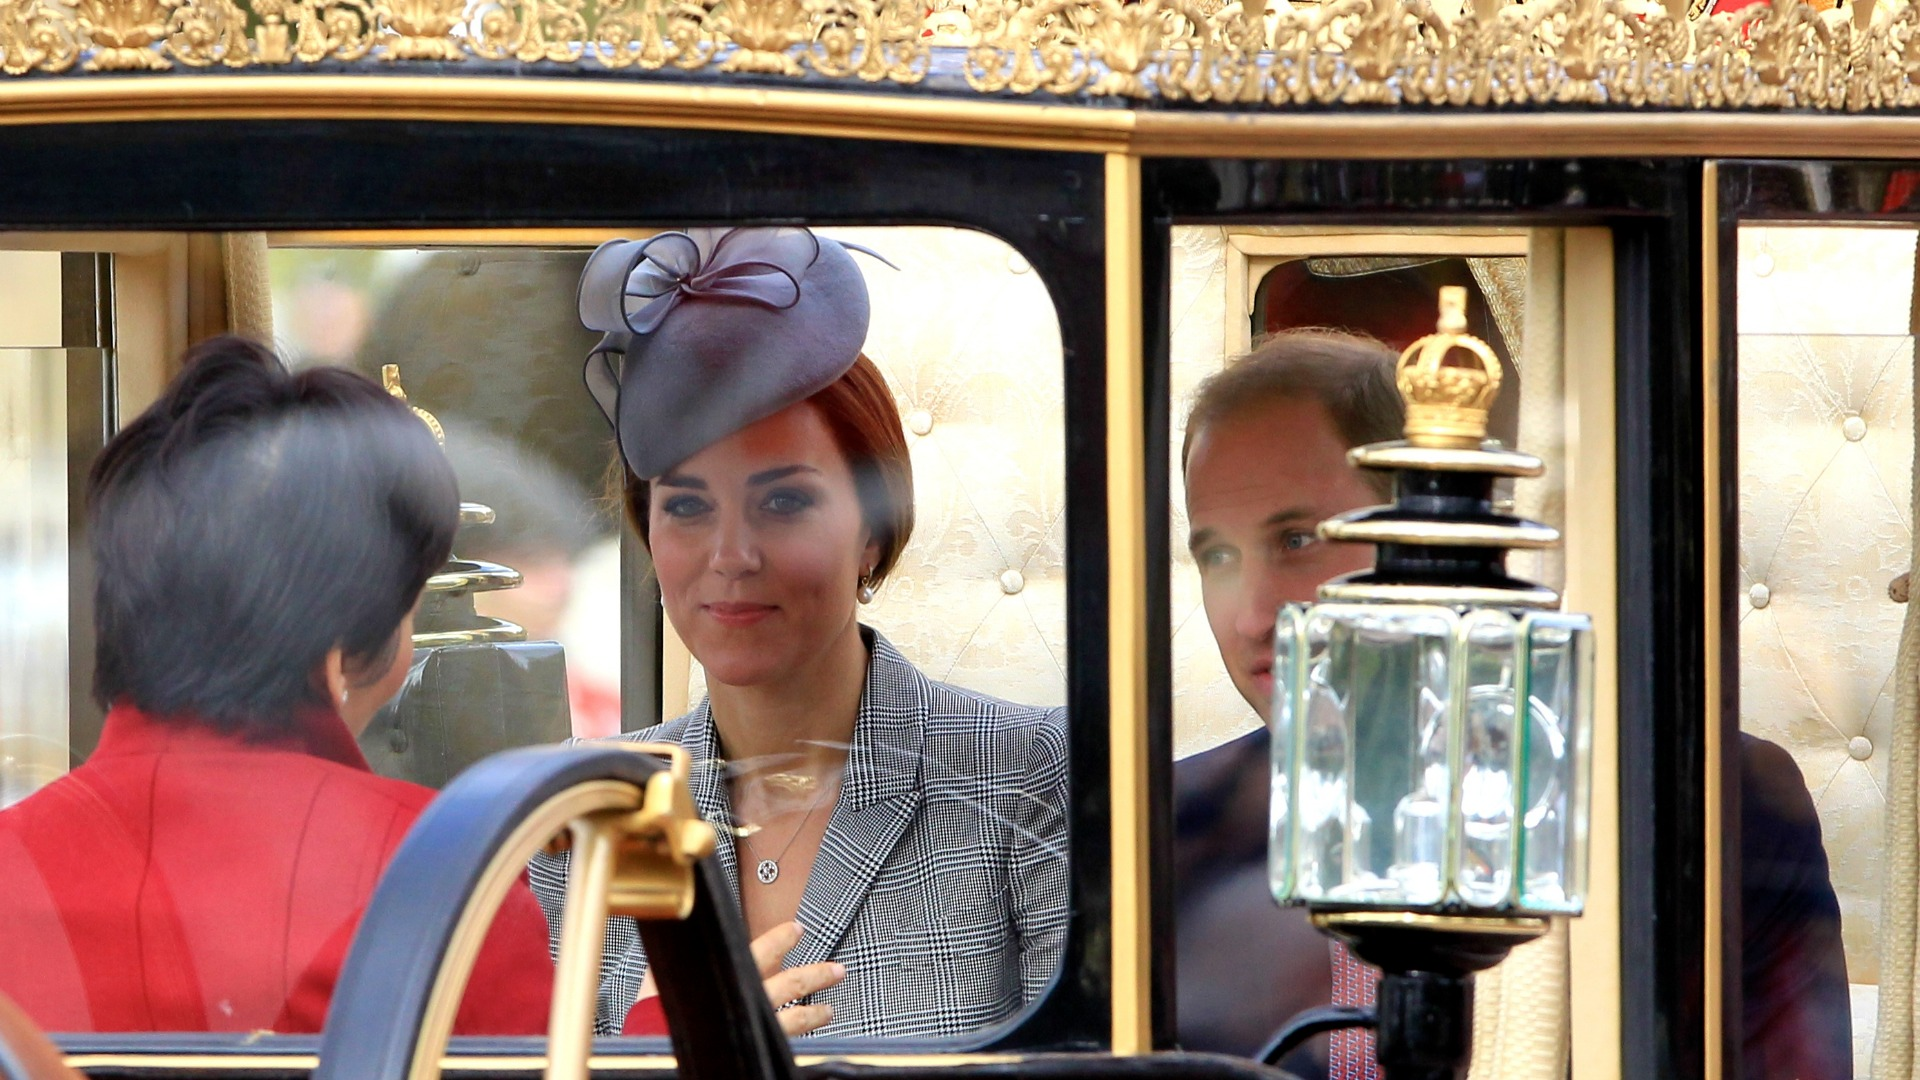 Kate Middleton travels in carriage to Horse Guards Parade